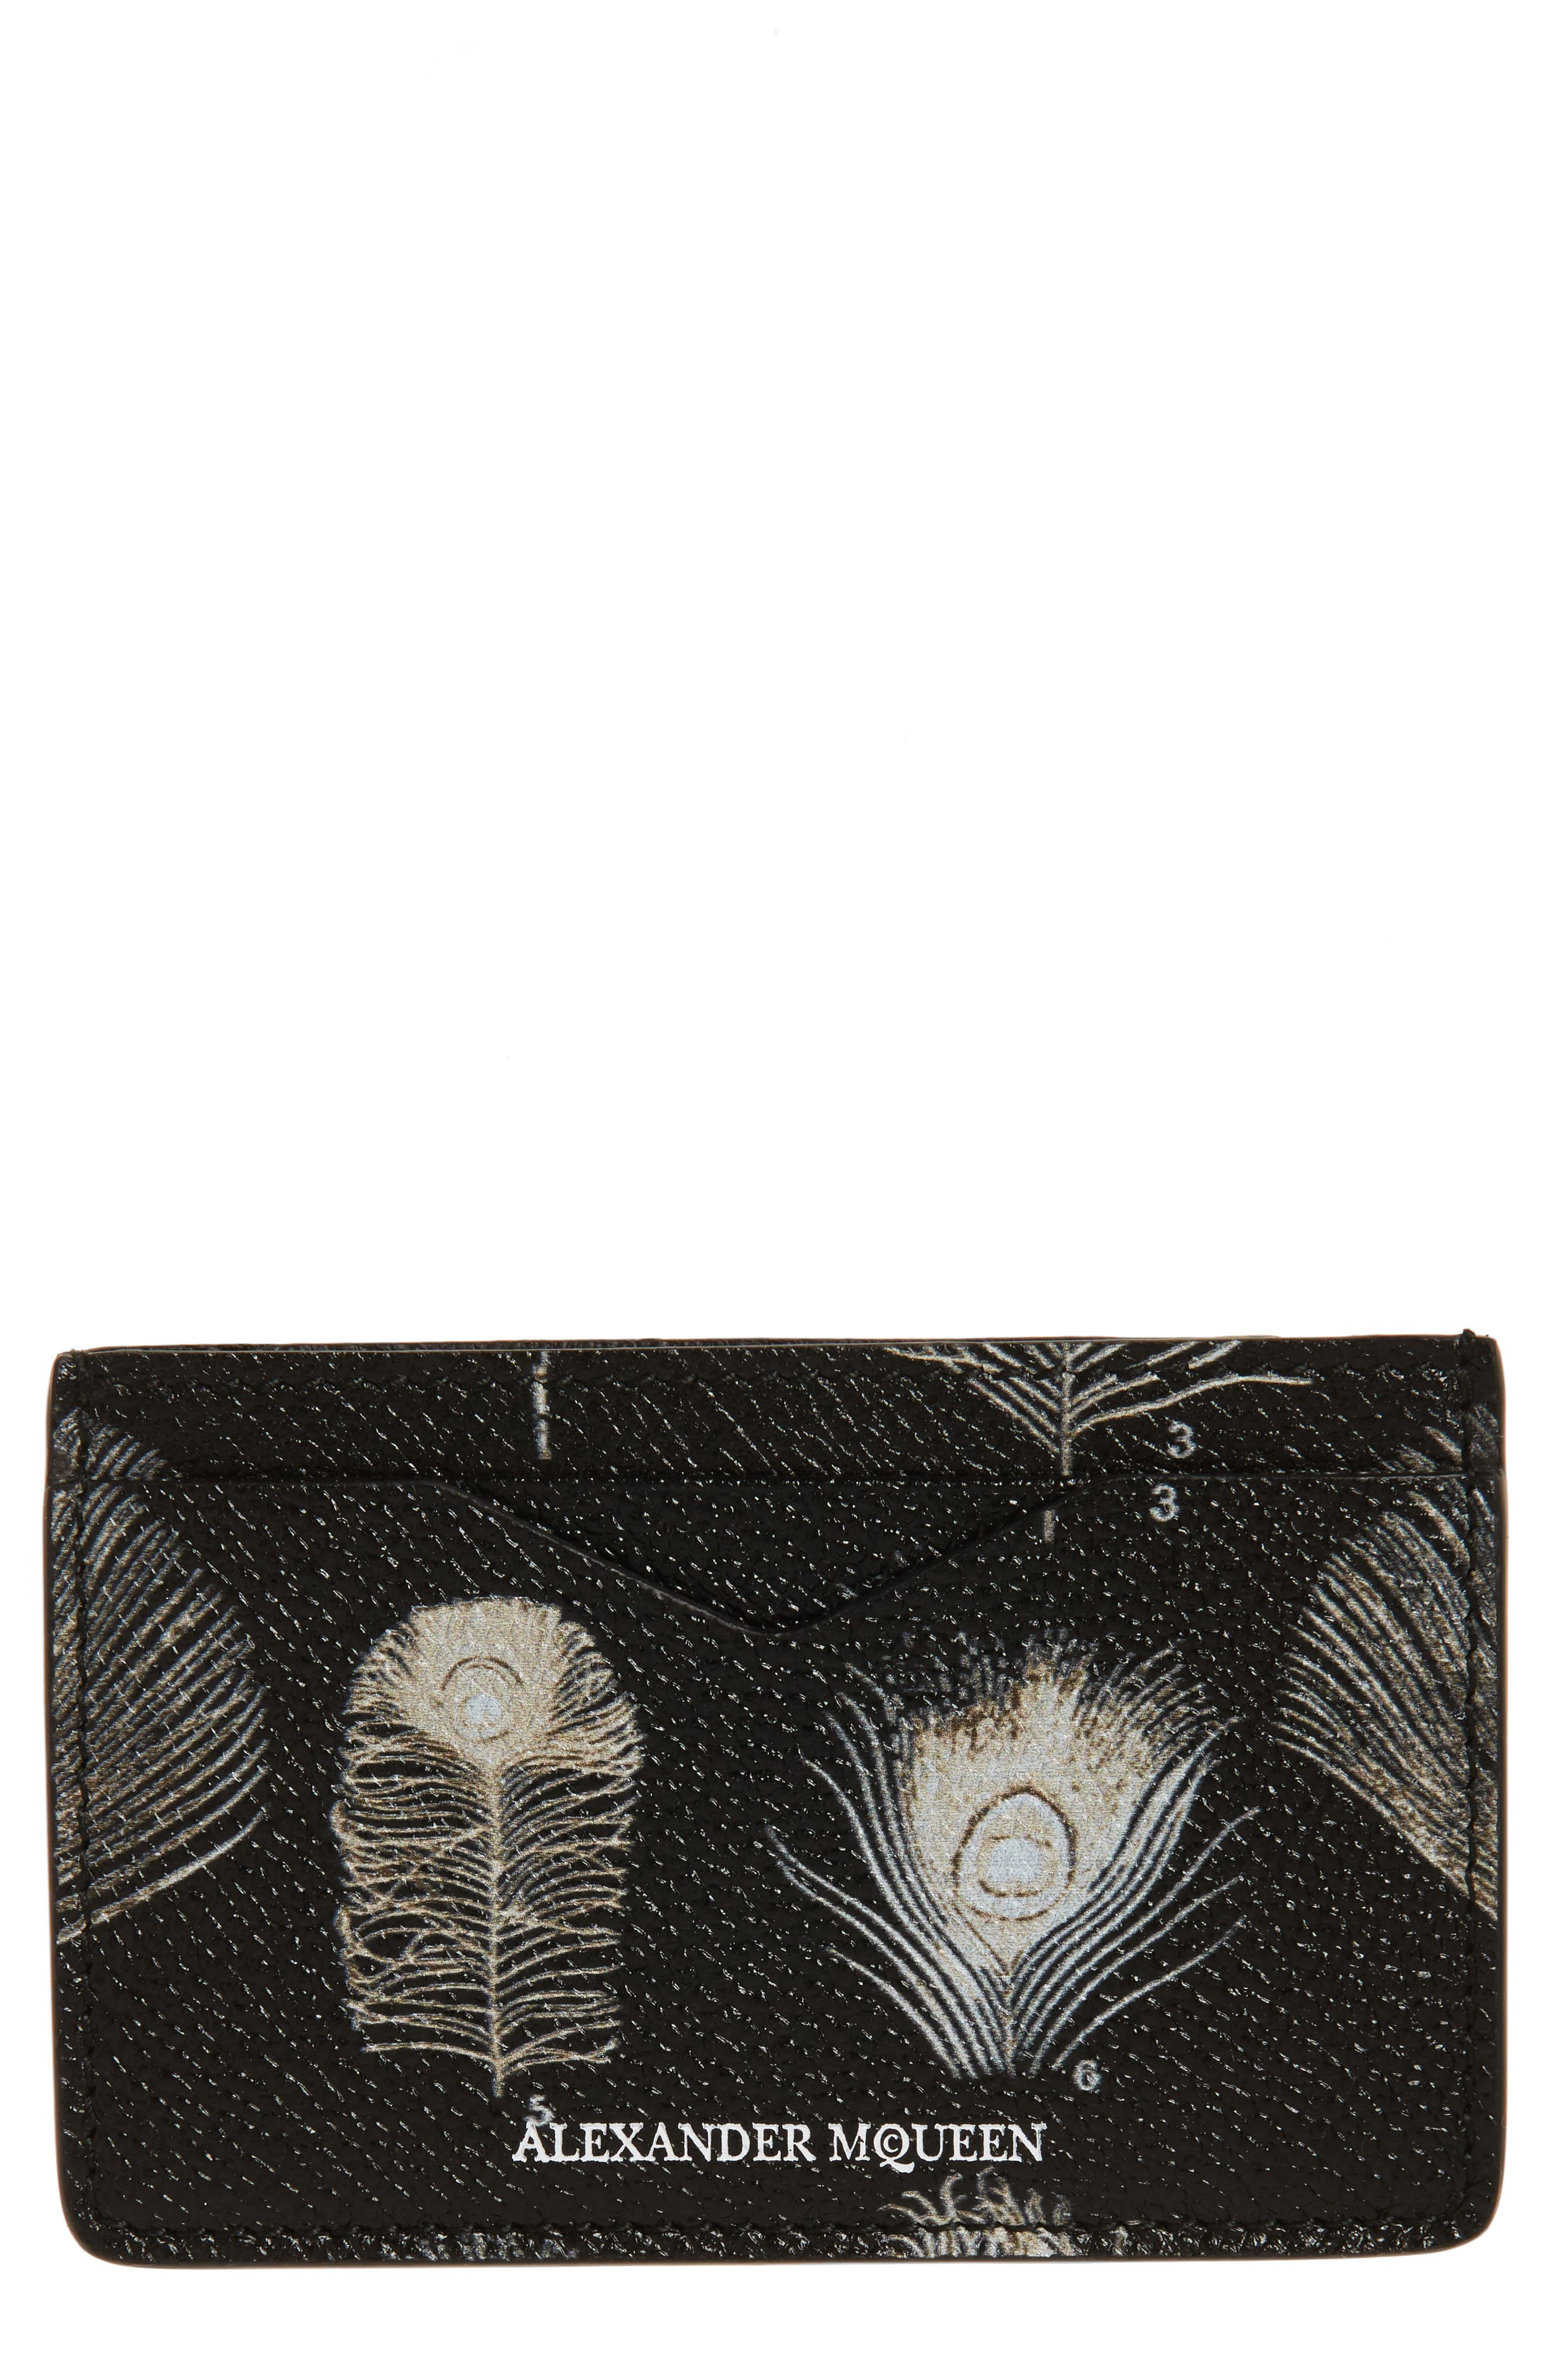 Peacock Feather Leather Card Case,                         Main,                         color, Black/ Off White